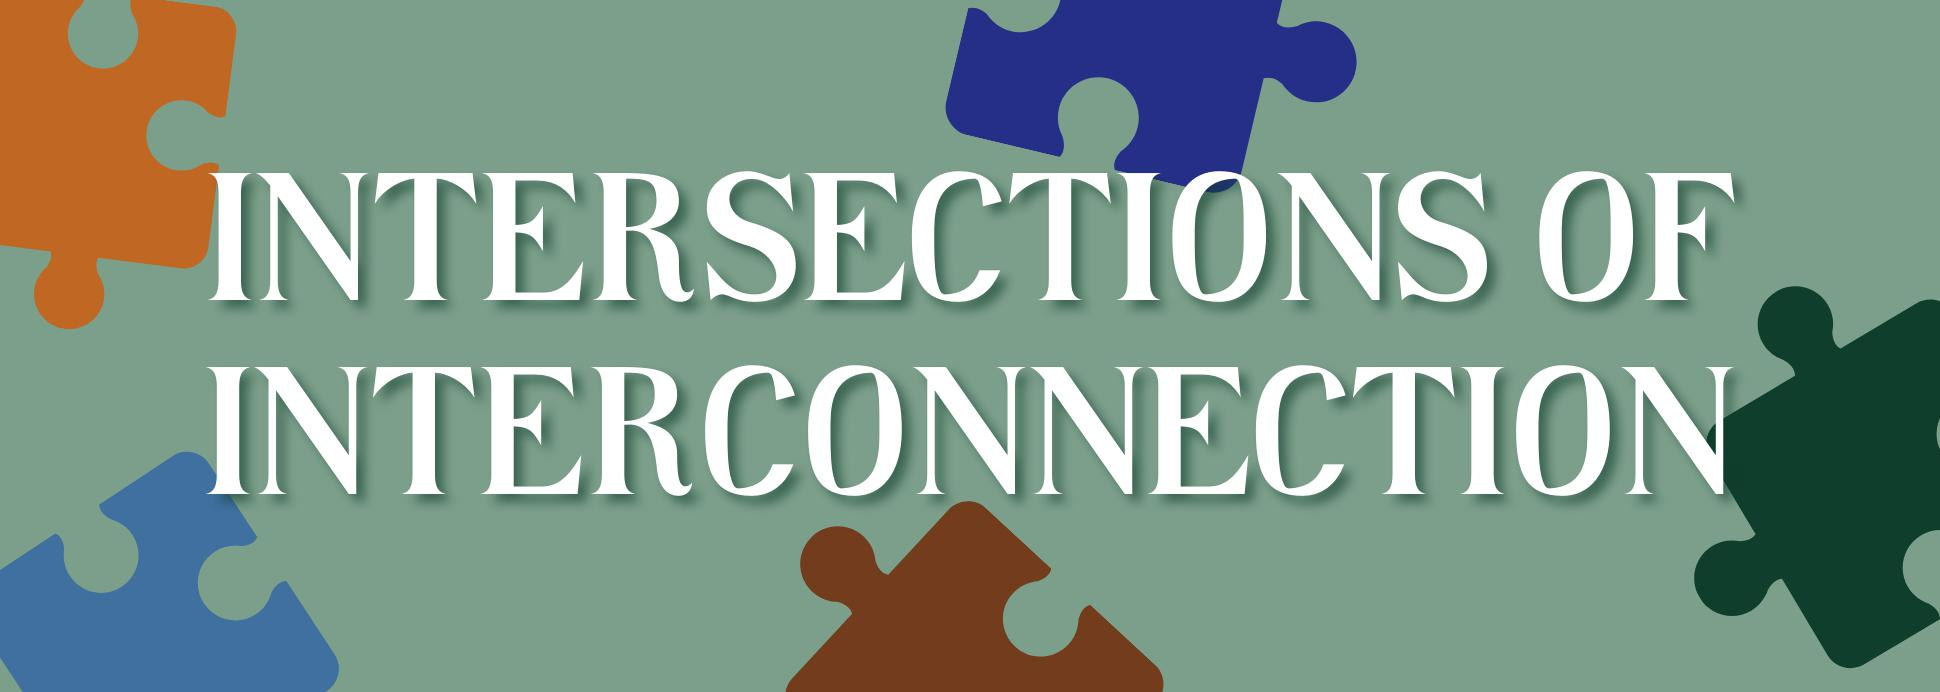 Intersections and Interconnections